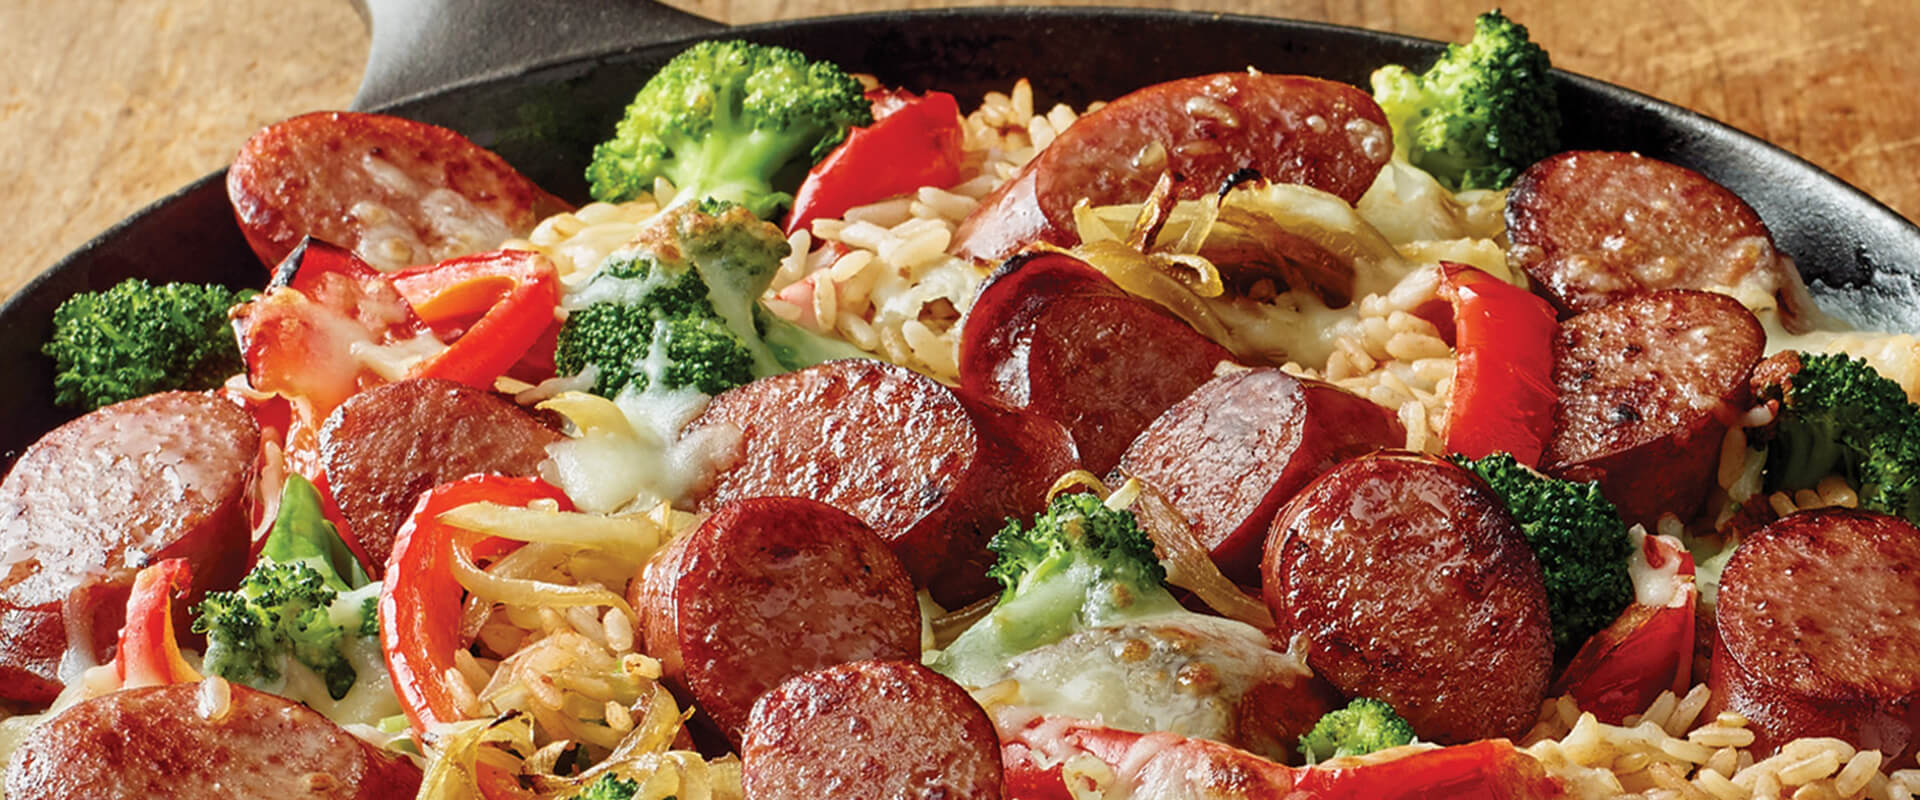 Easy Smoked Sausage Skillet With White Rice Success Rice